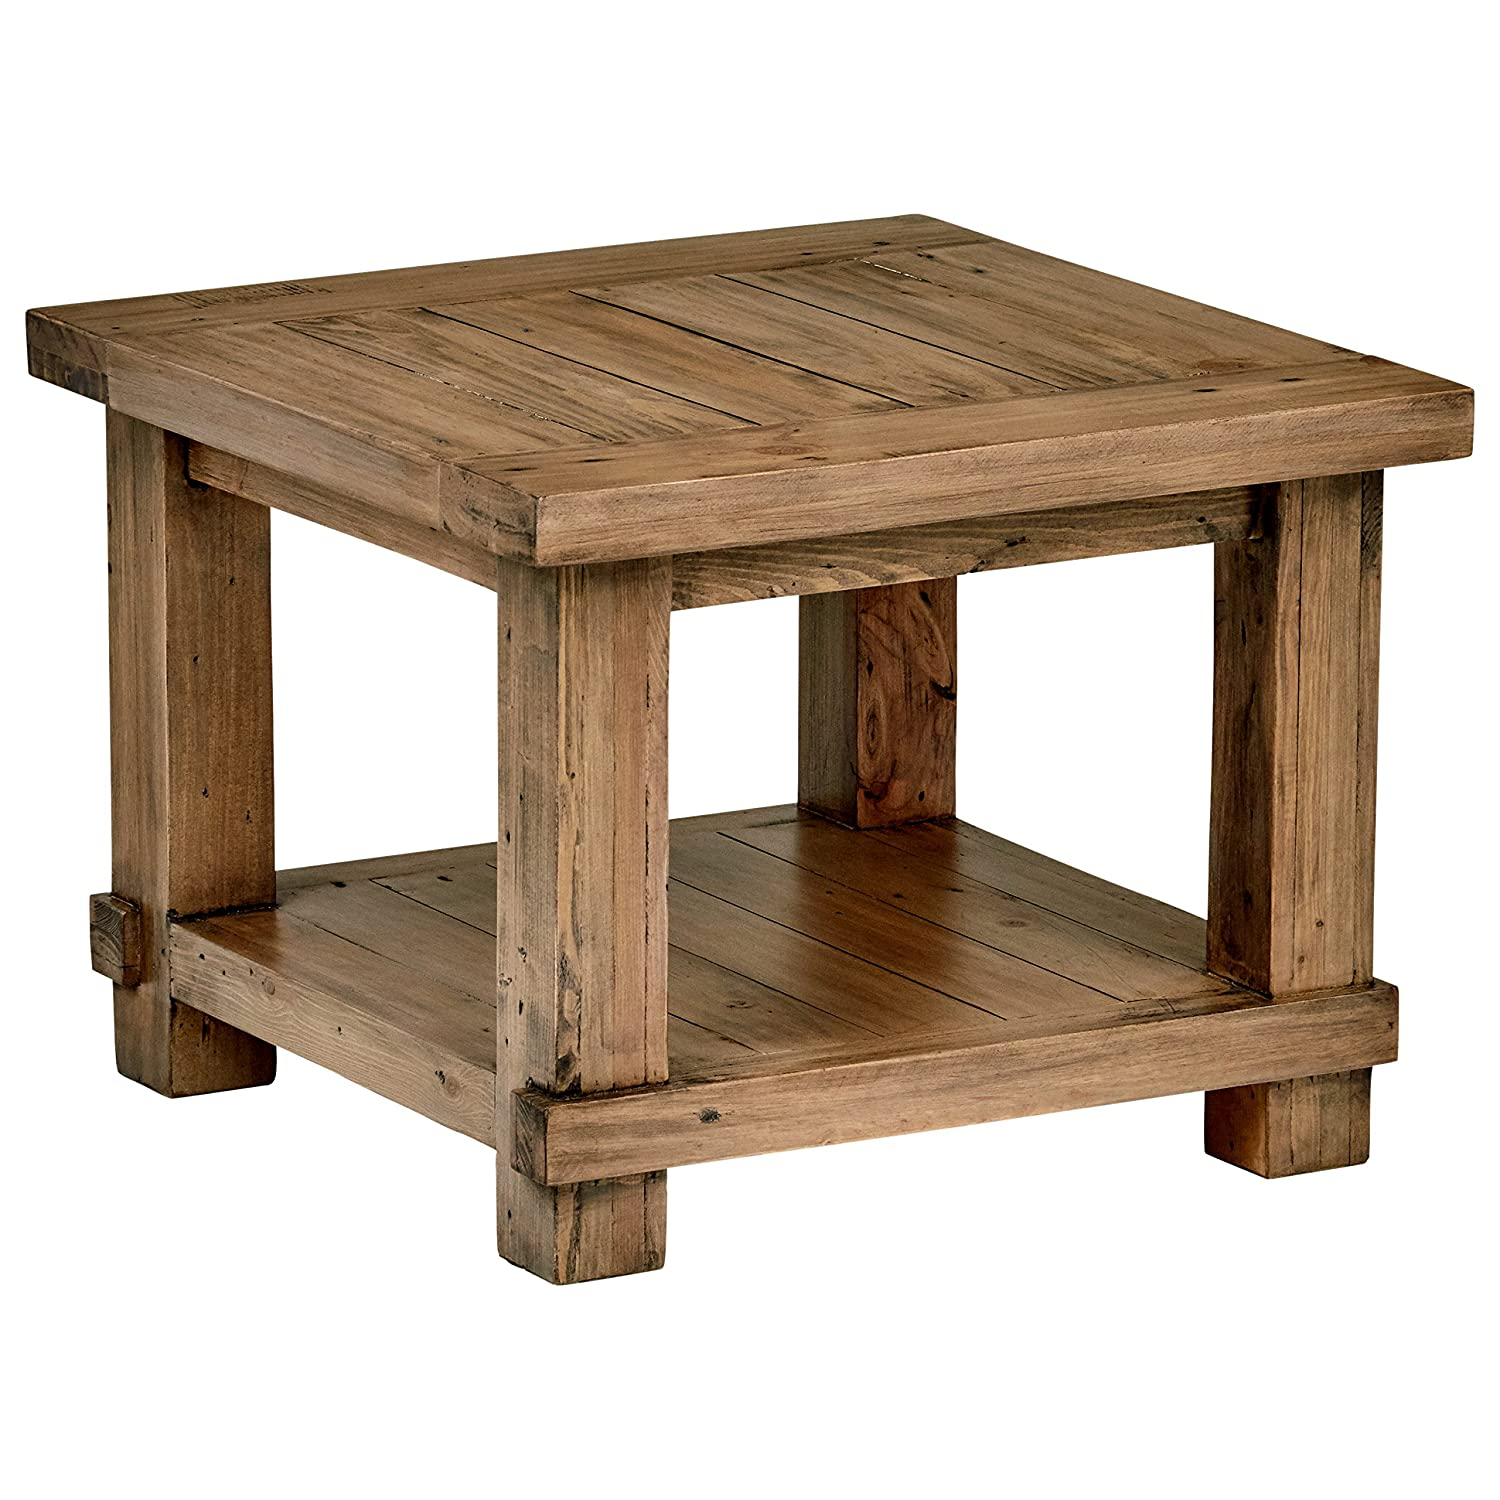 Stone Beam Ferndale Rustic Reclaimed Pine Side End Table, 24 W, Sandstone